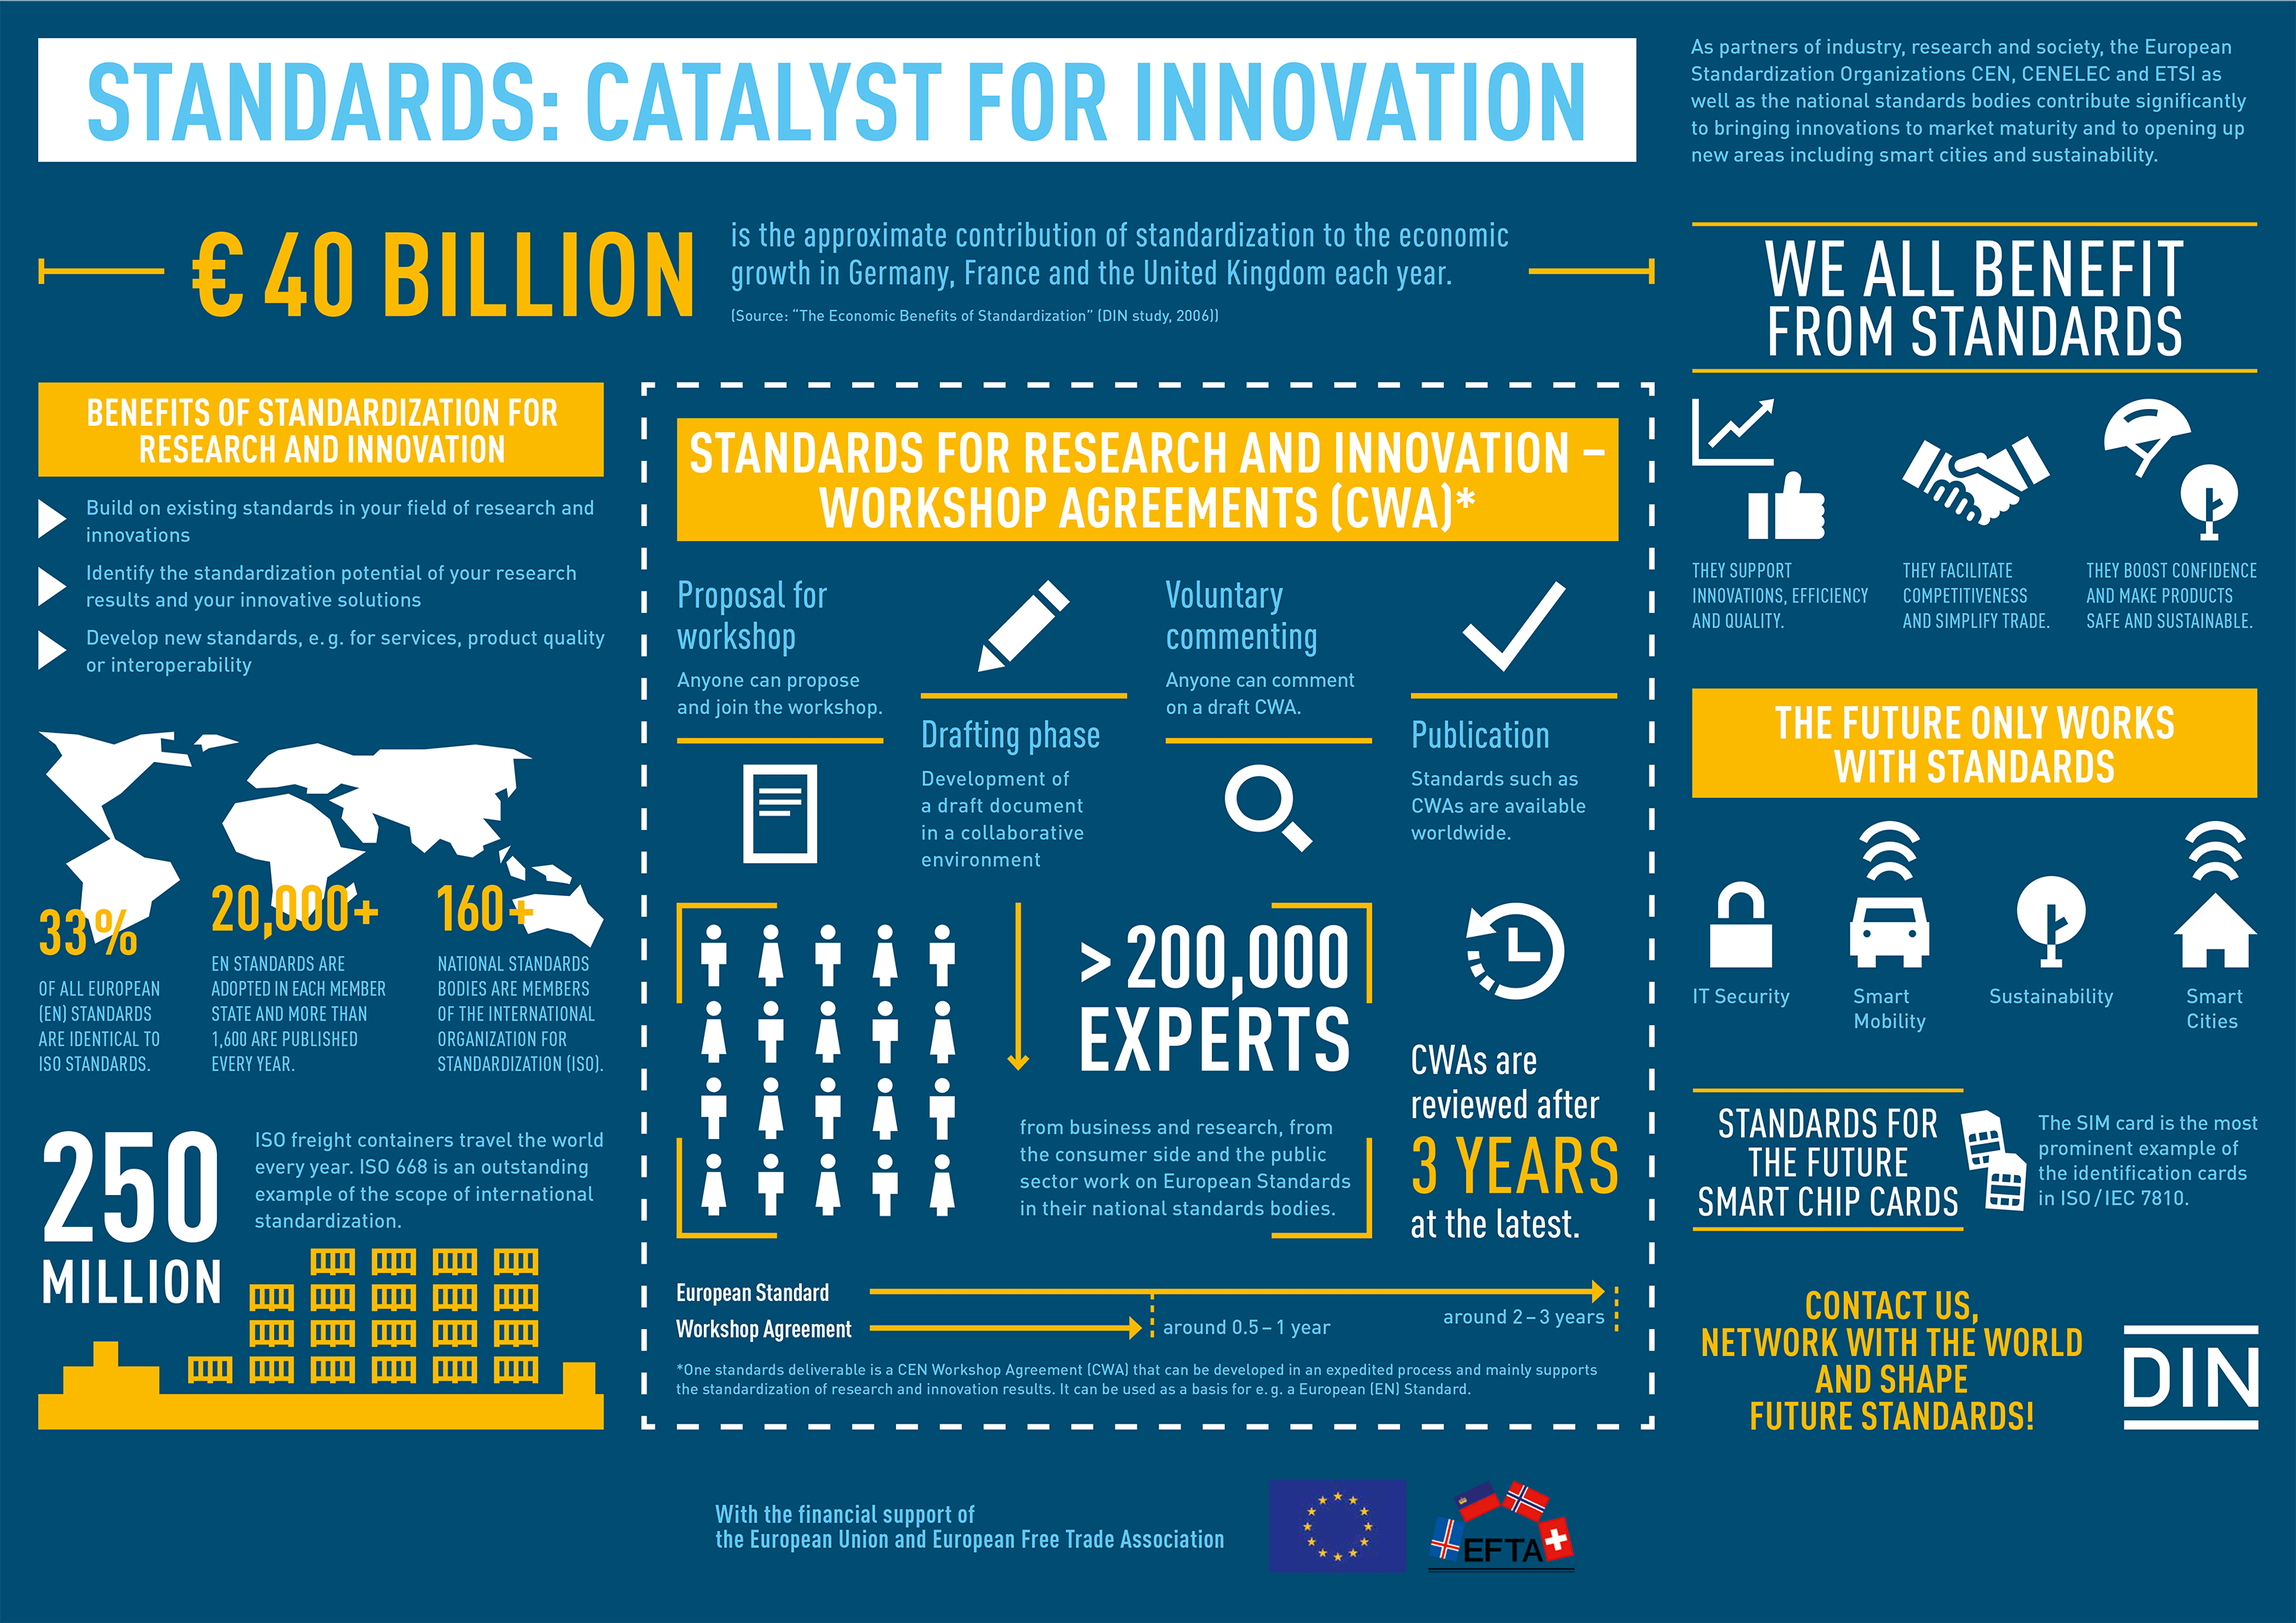 Standards - Catalyst for innovation infographics